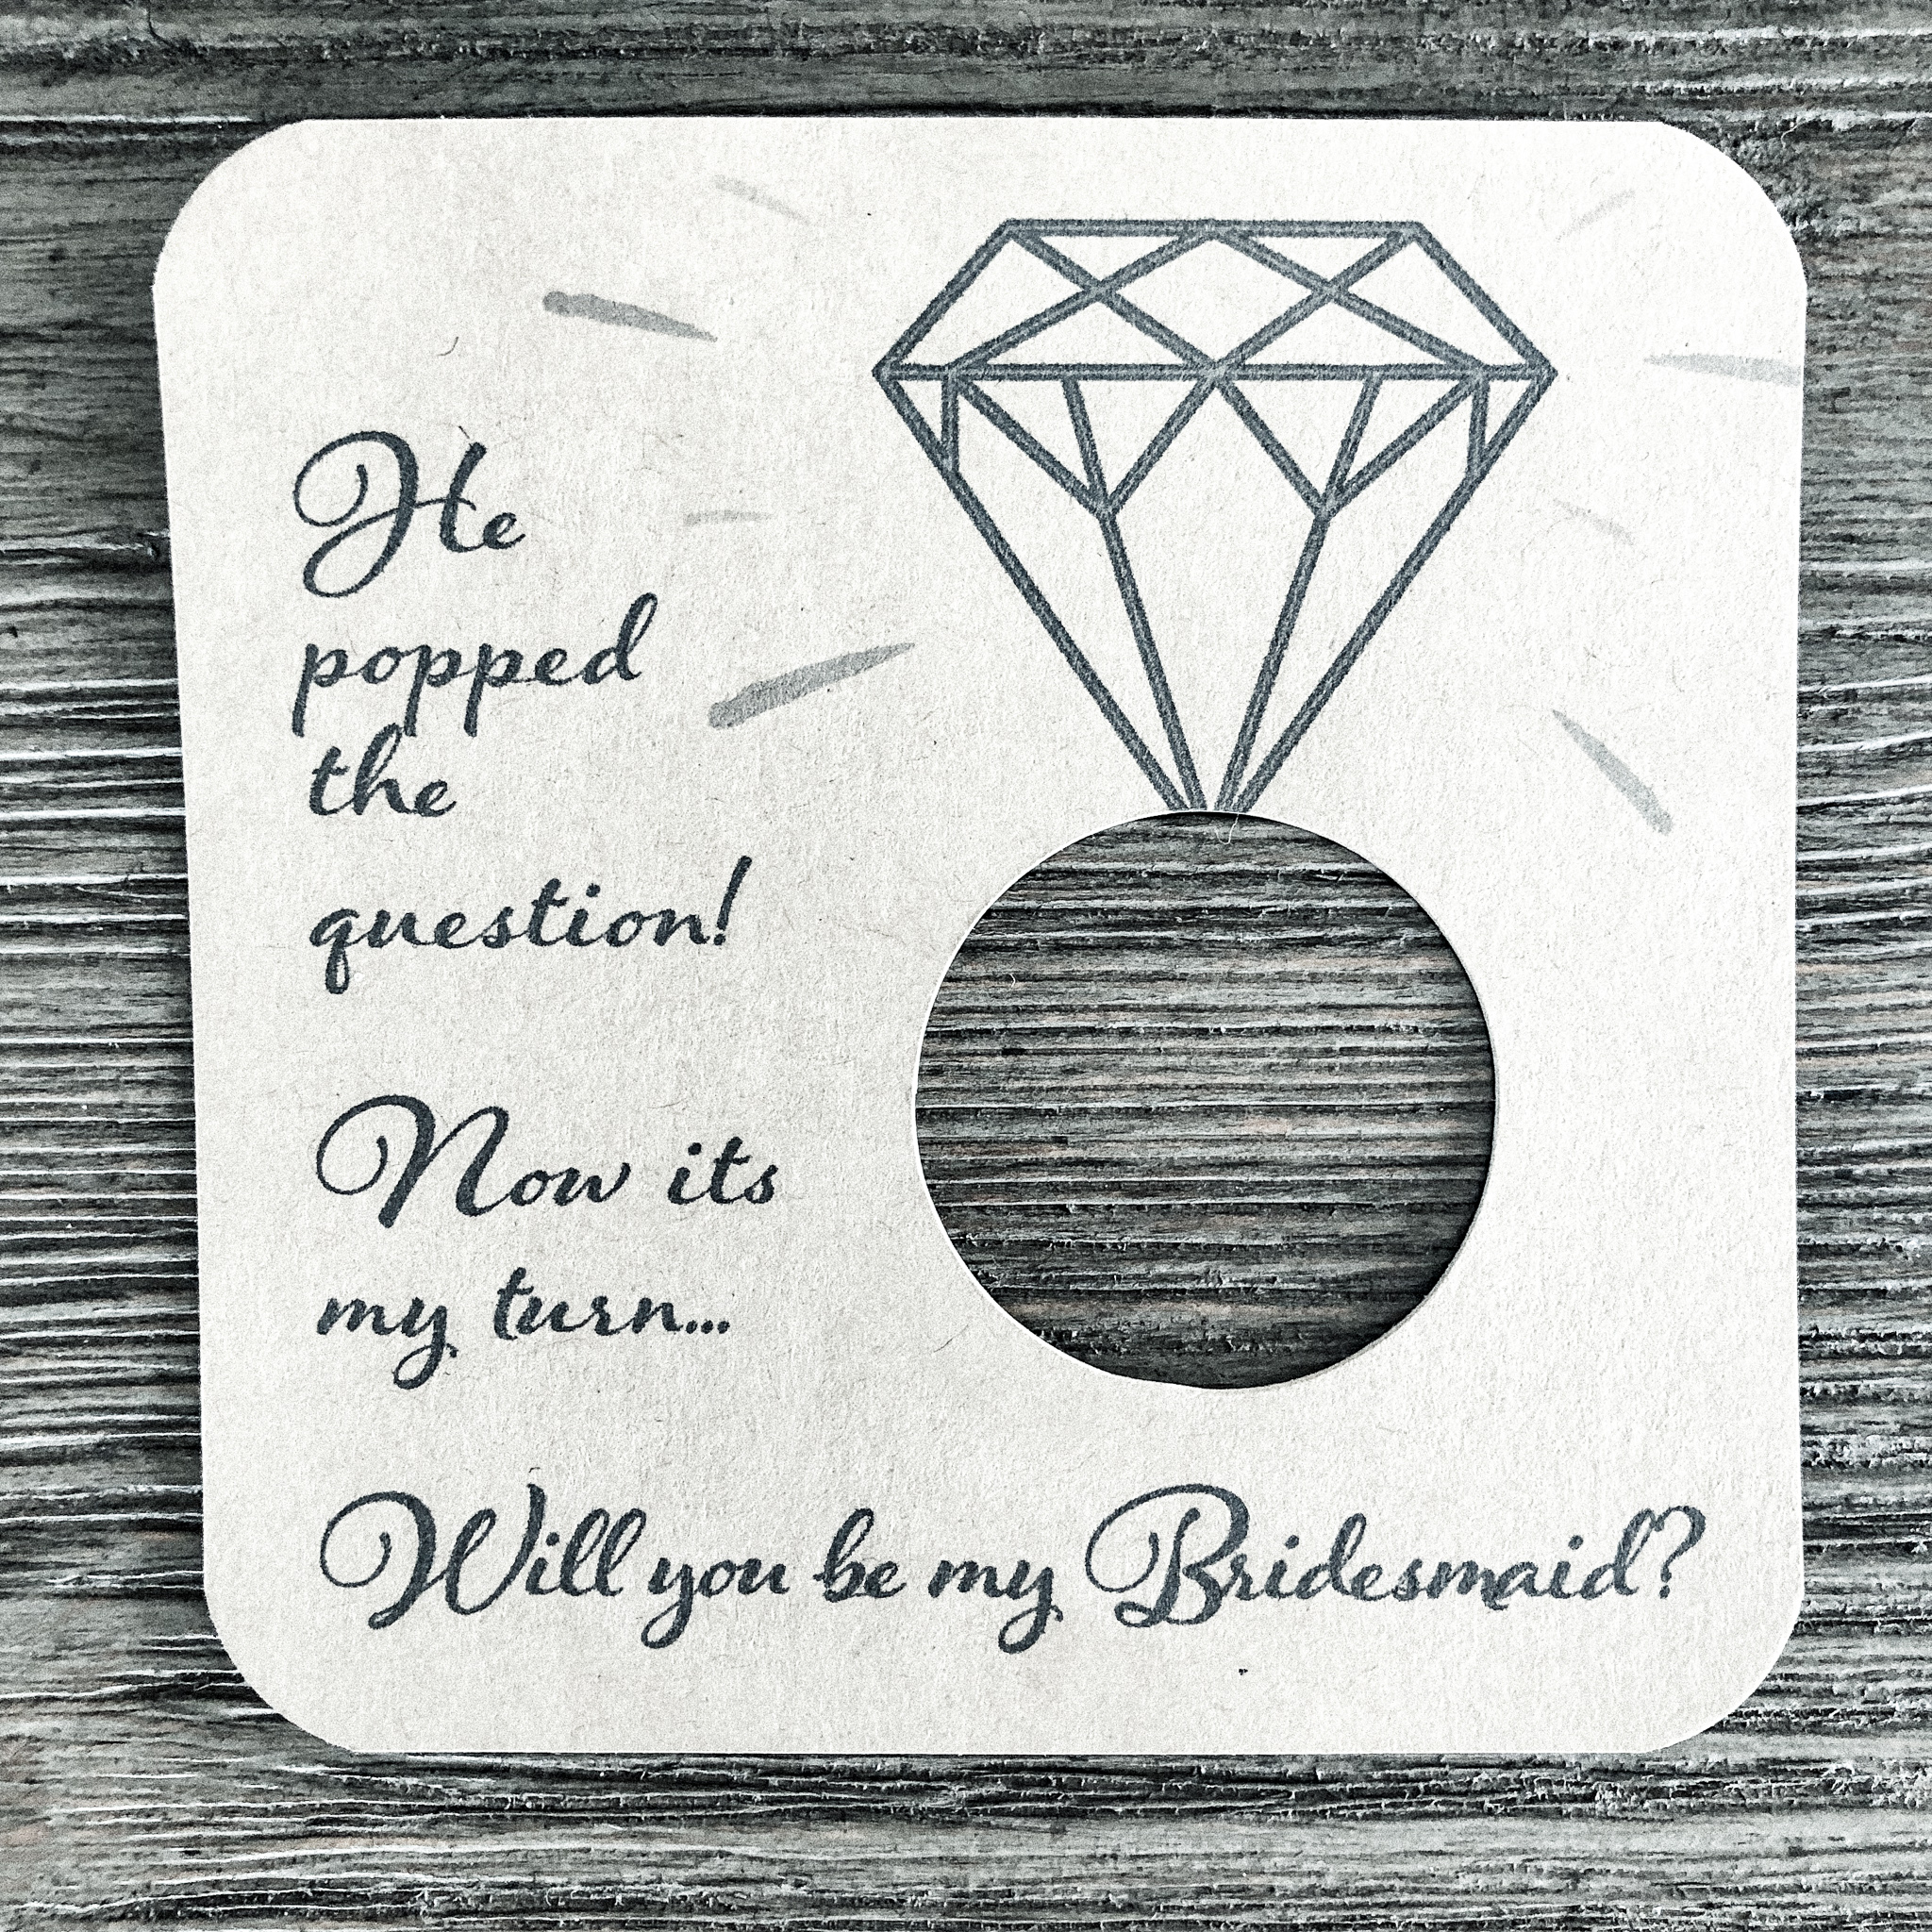 He popped the question! Now its my turn... Will you be my bridesmaid? Kraft brown card stock.